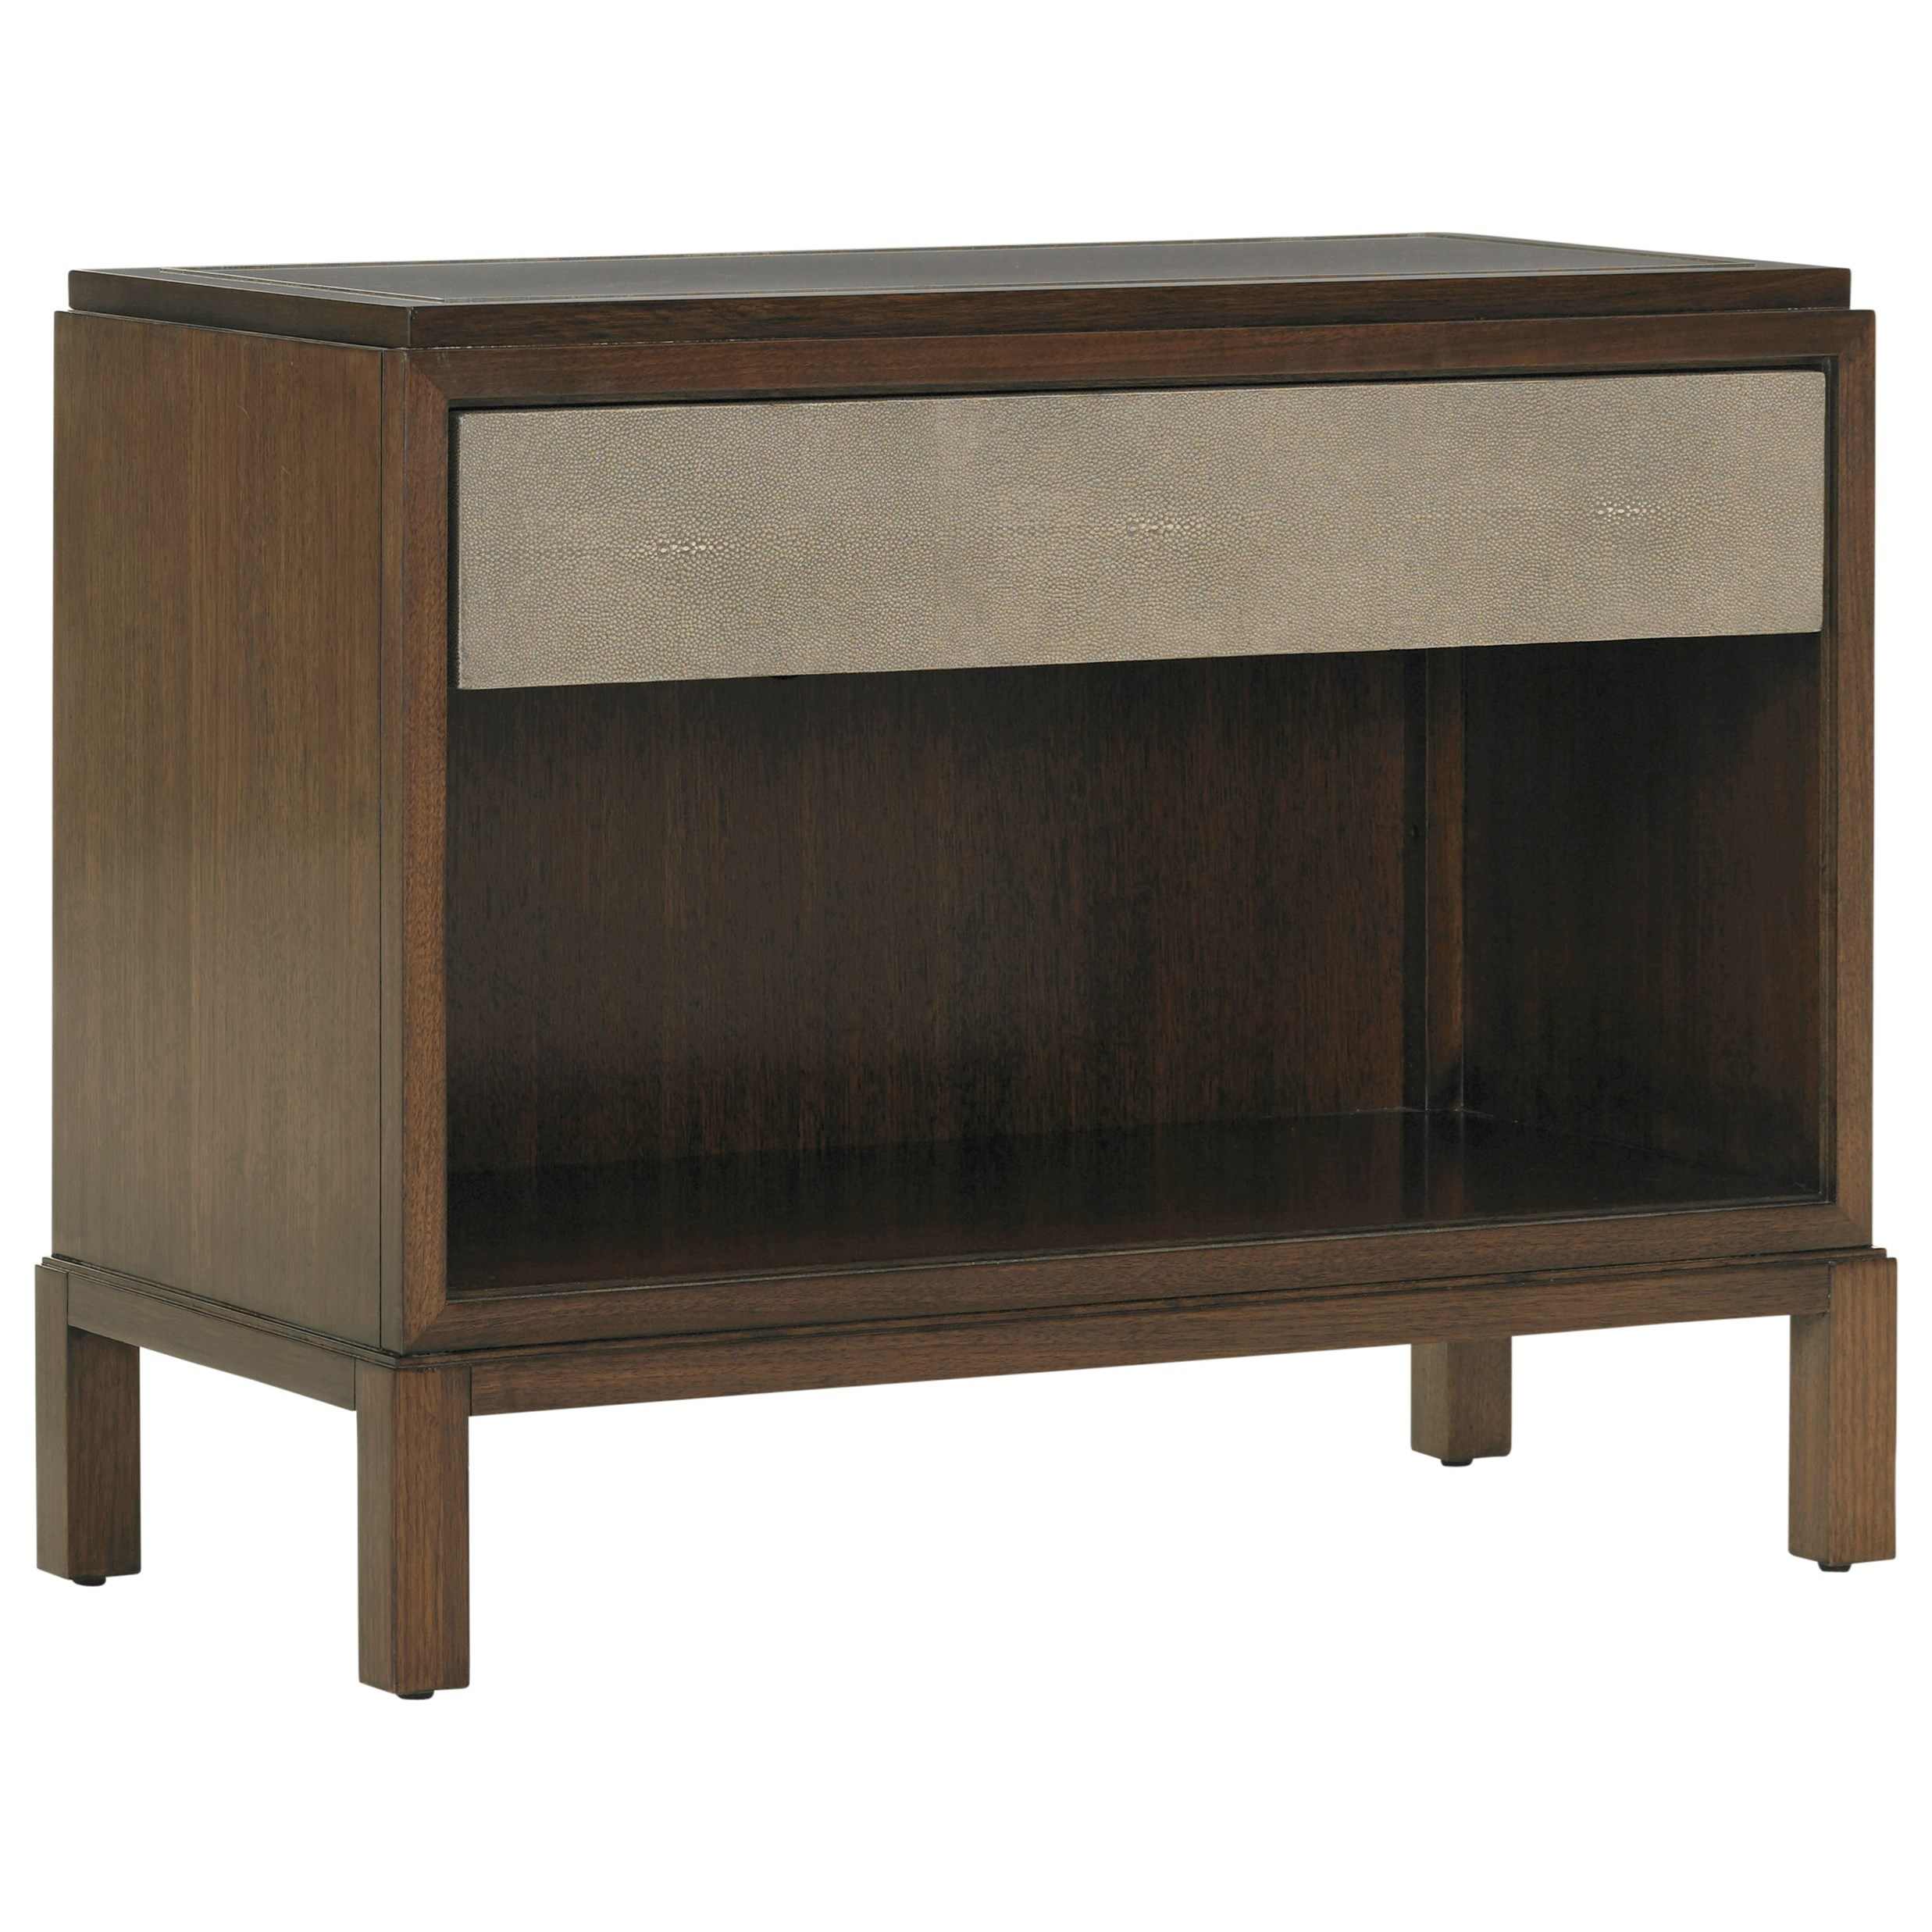 MacArthur Park Pandora Nightstand by Lexington at Johnny Janosik